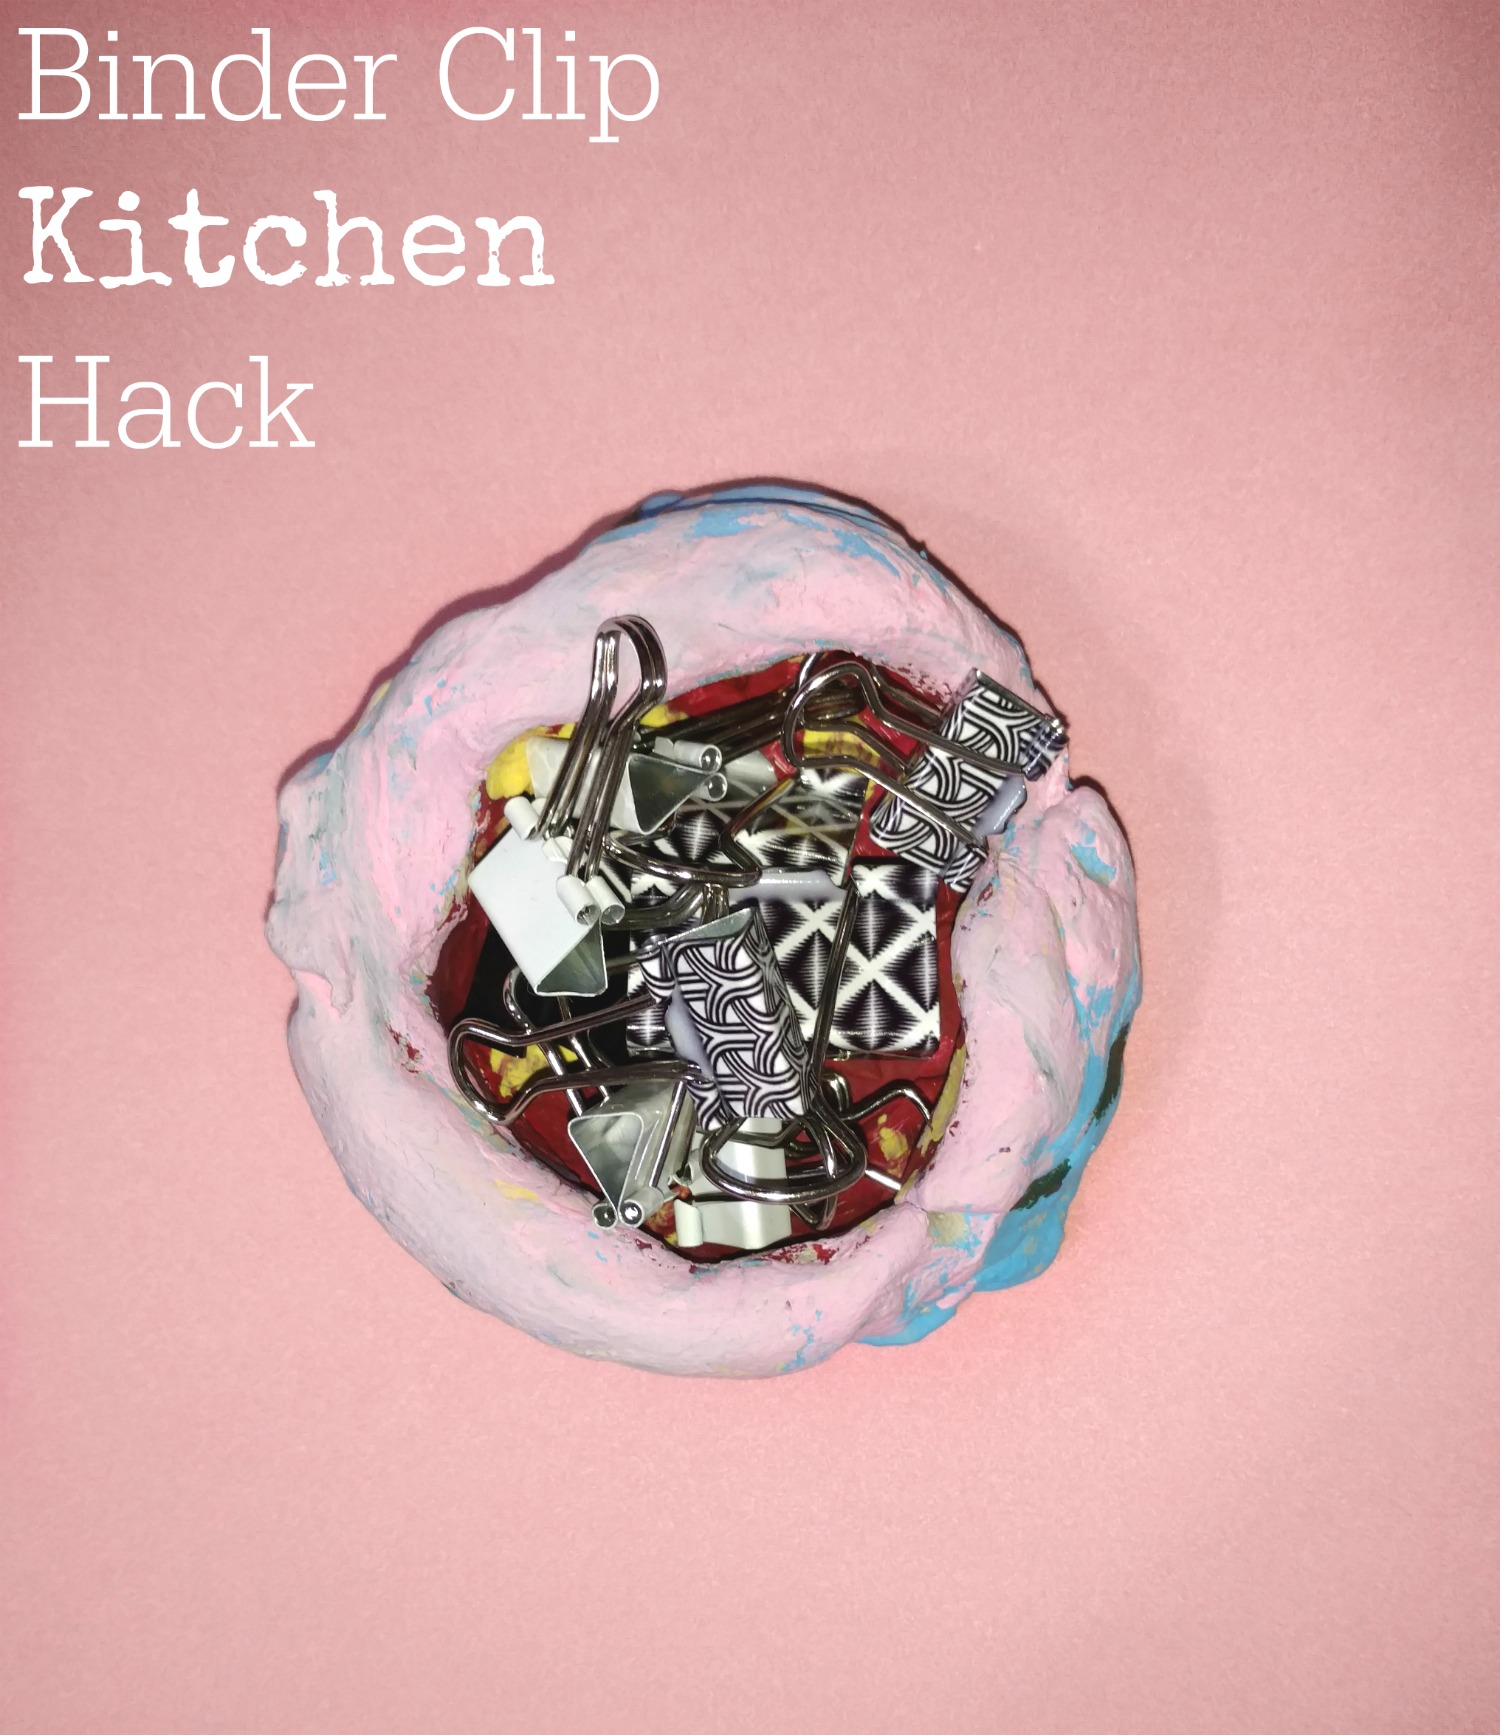 In this kitchen hack, you can use binder clips in an unexpected way!